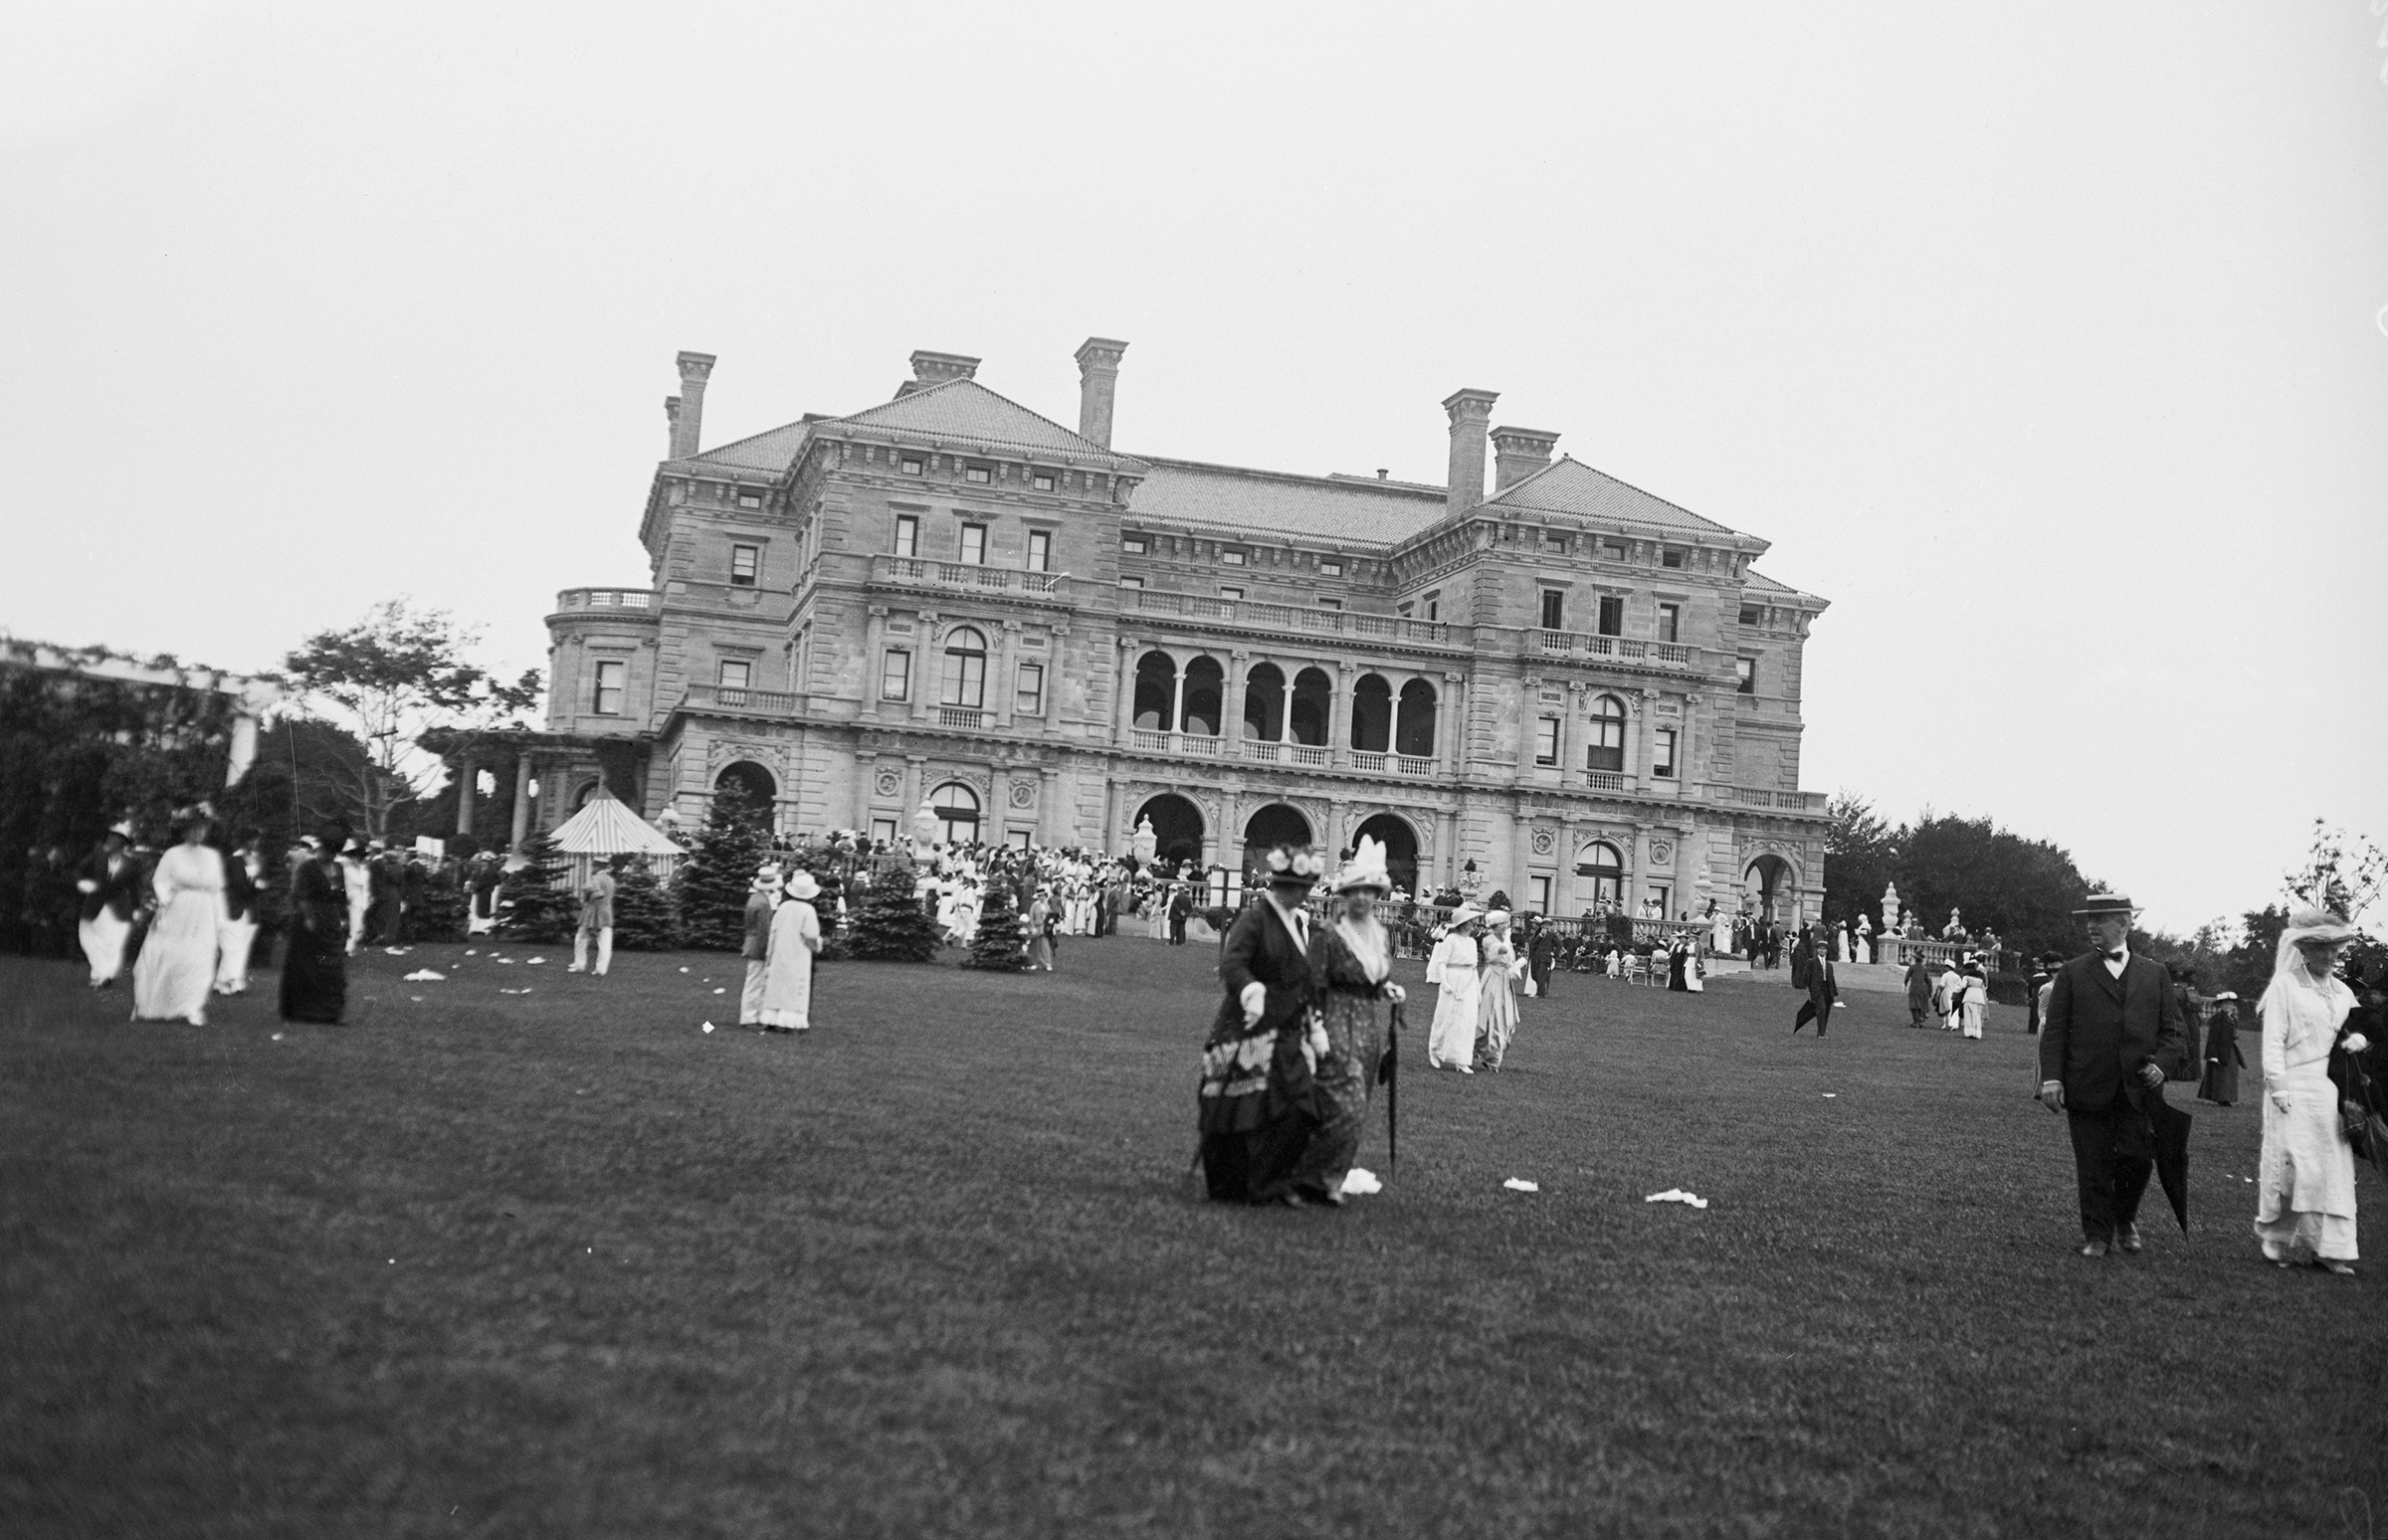 The Breakers—Cornelius Vanderbilt II's Newport, R.I., mansion—in 1914